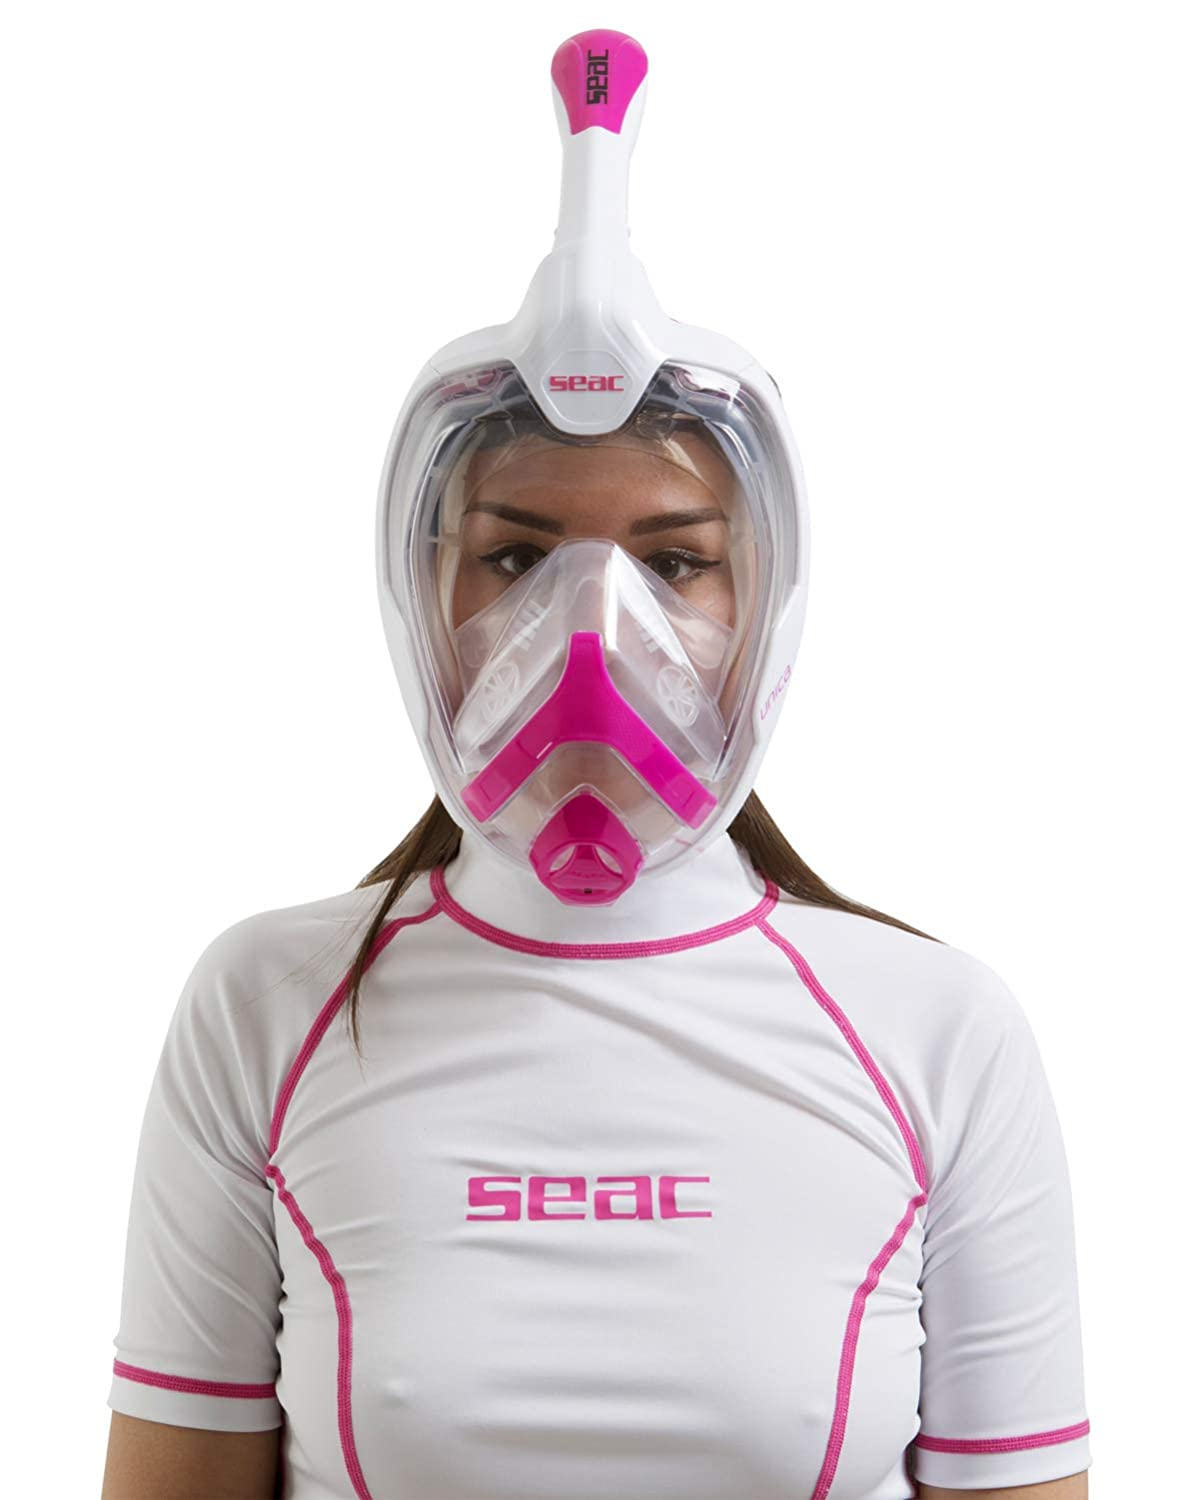 SEAC Unica Italian Design Snorkeling 180/° Panoramic View Full Face Snorkel Mask with Dry Snorkel Top White Pink MD FIT